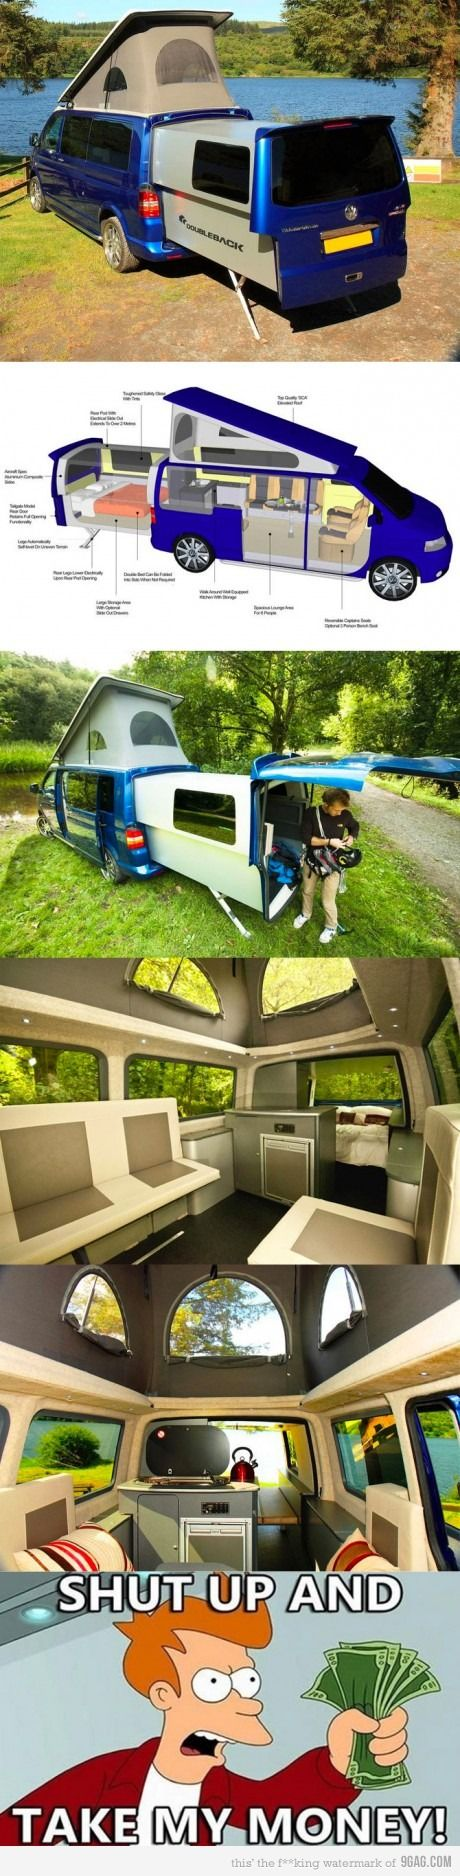 This would be fantastic for a quick get away from it all. . . an epic want.